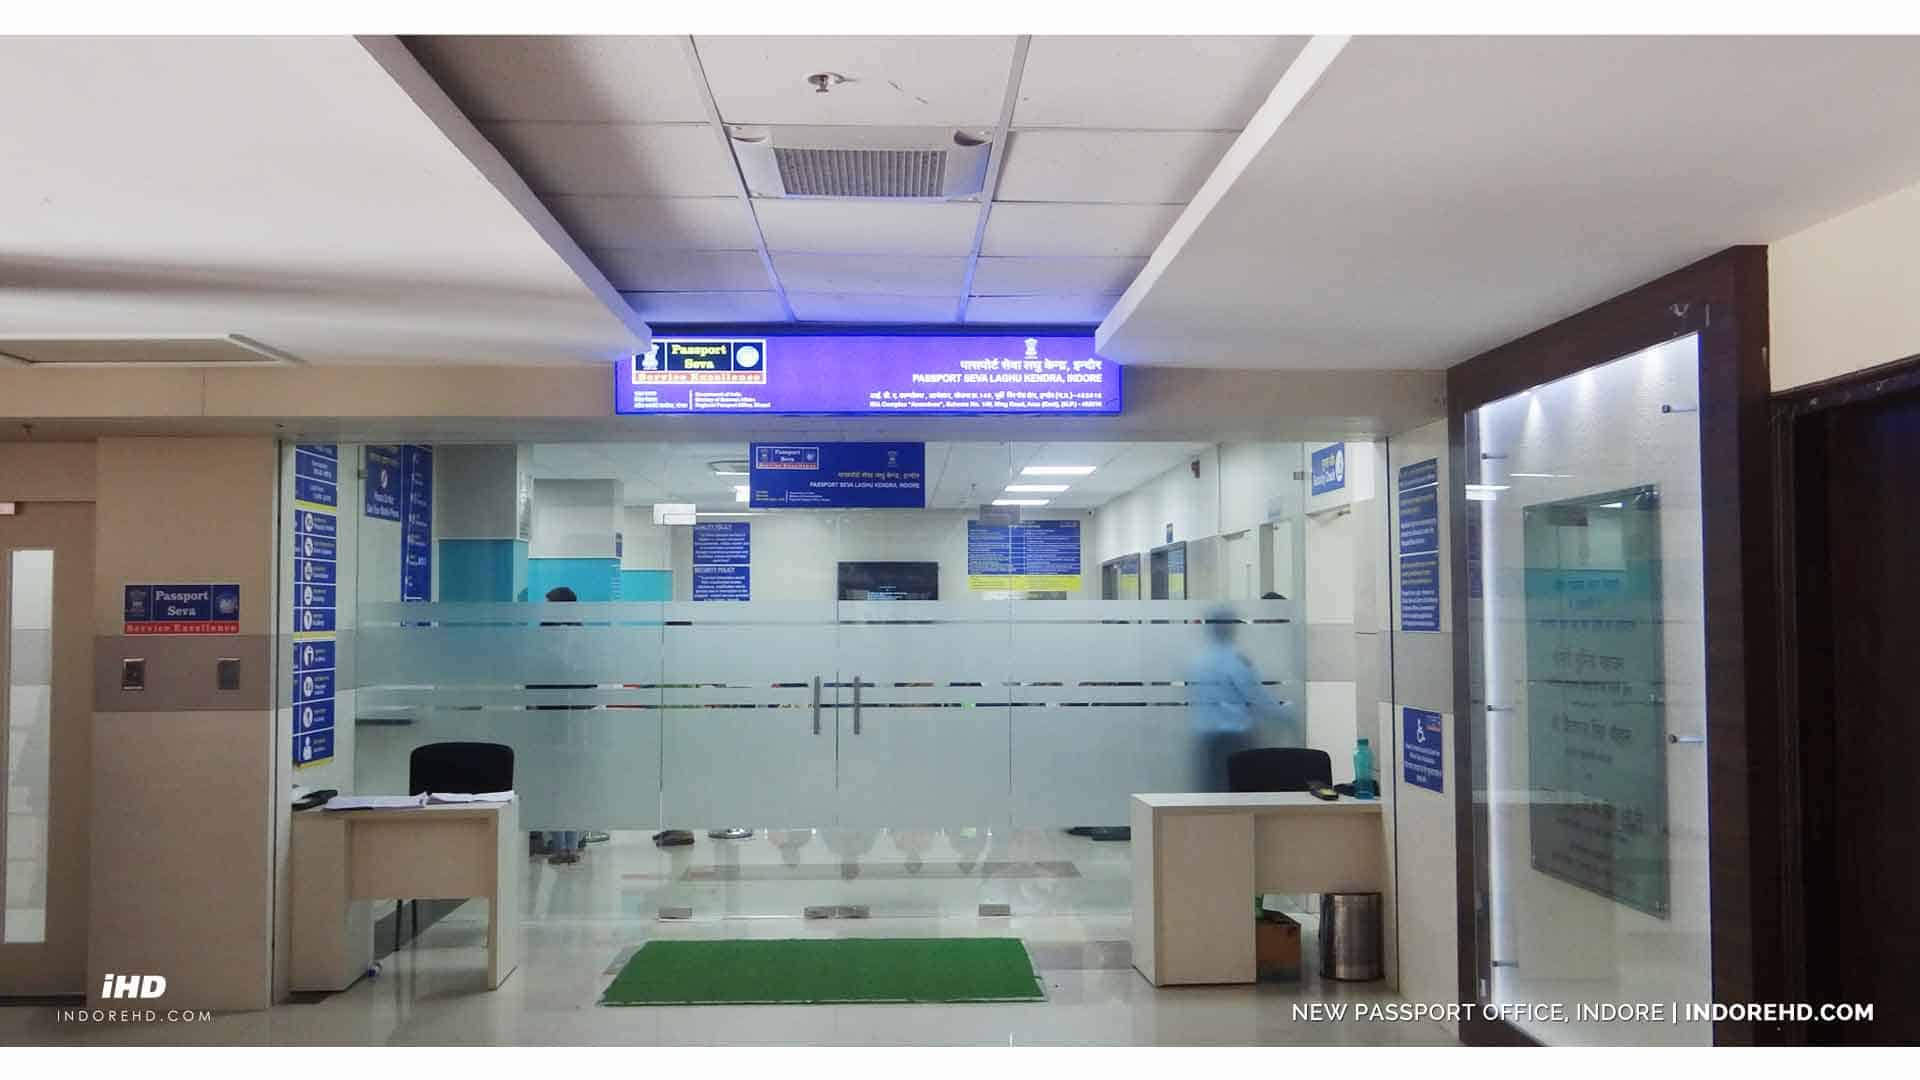 Passport-office-Indore-IndoreHD